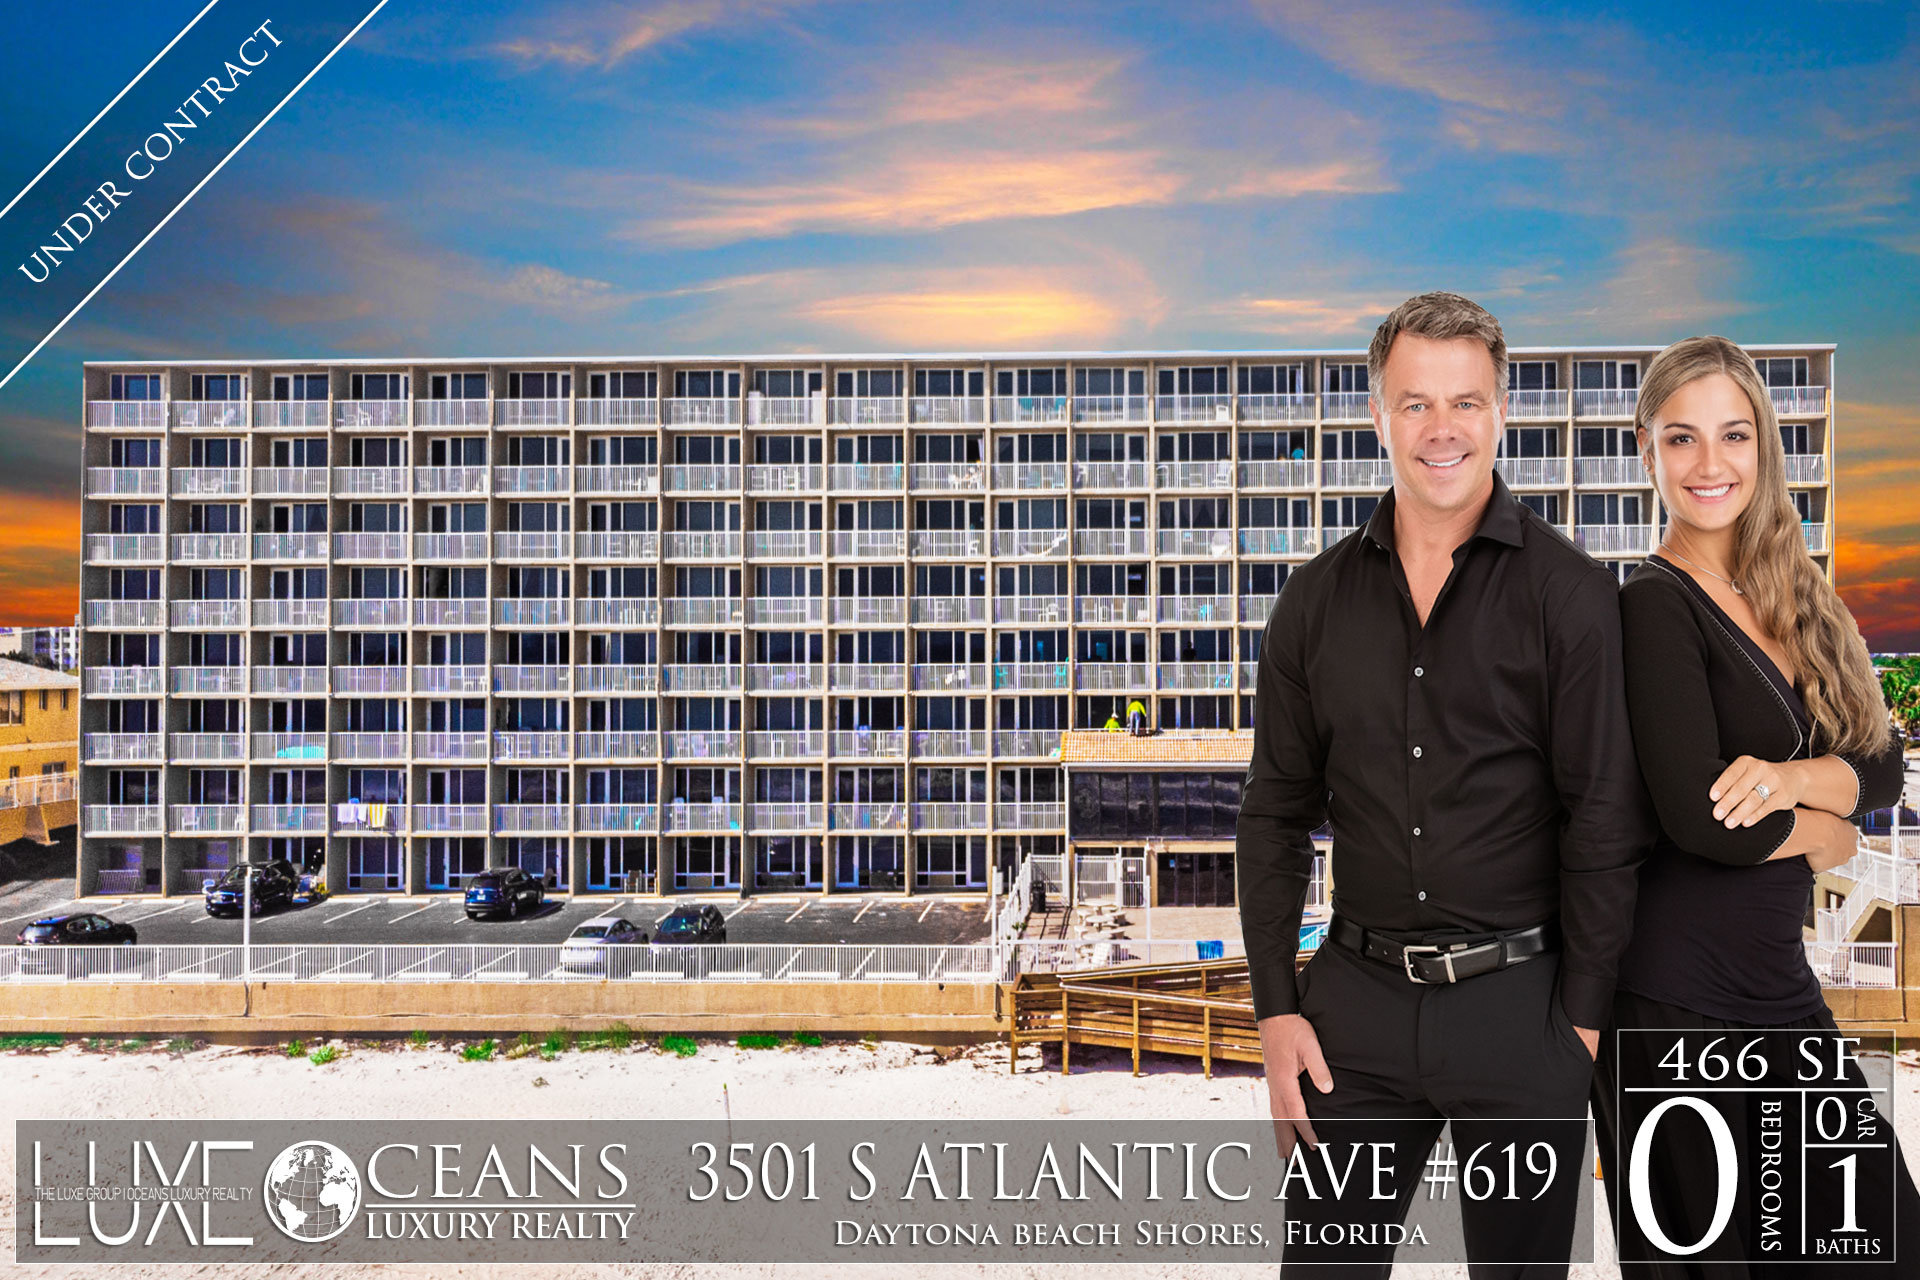 Pirates Cove Condos For Sale Oceanfront Real Estate at 3501 S Atlantic Ave,  Daytona Beach Shores, FL Under Contact